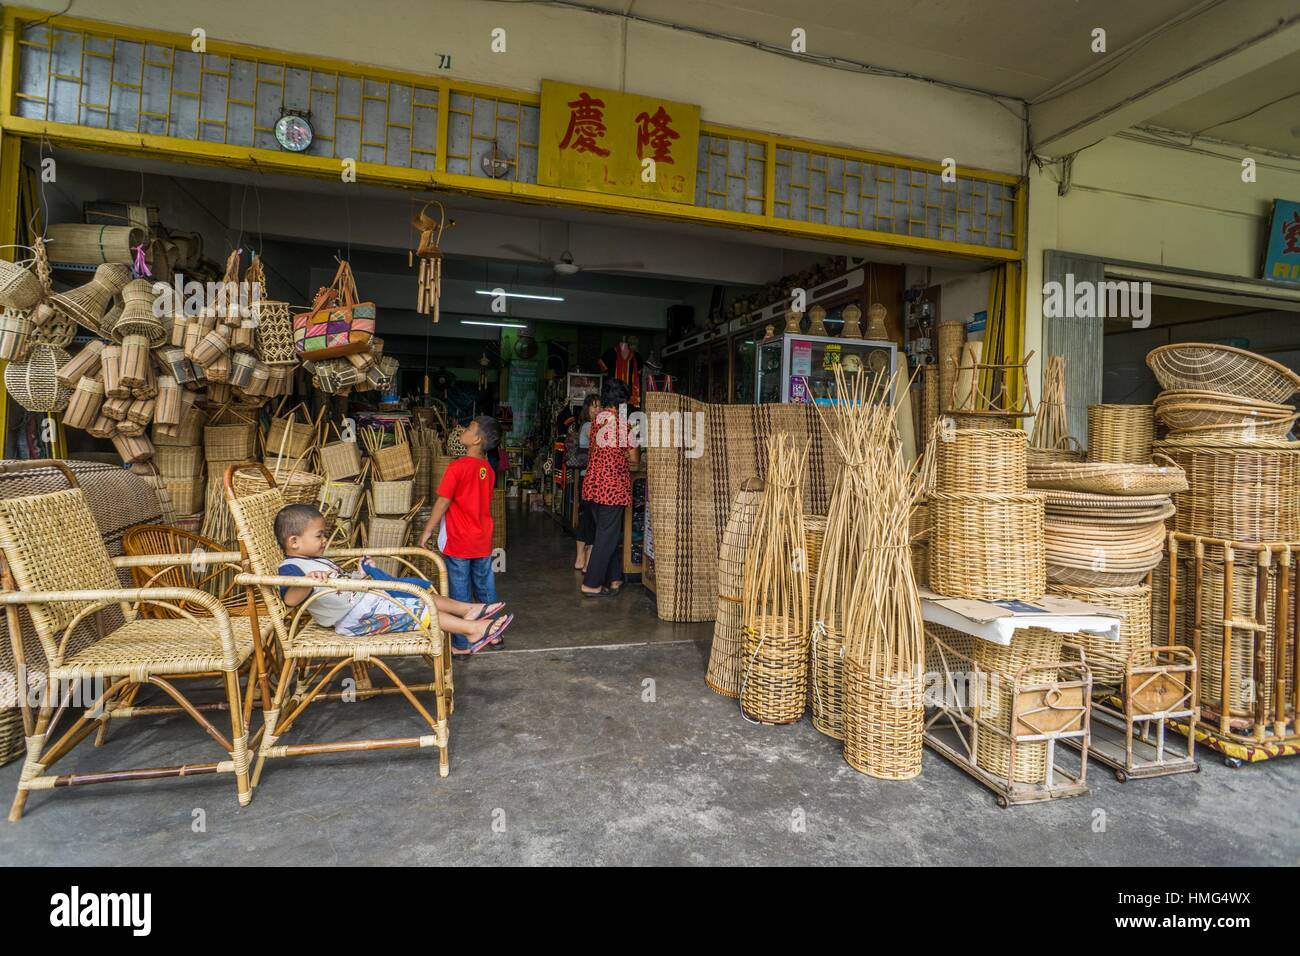 A Retail Shop Selling Furniture Made From Rotan At Bau Sarawak Stock Photo Alamy